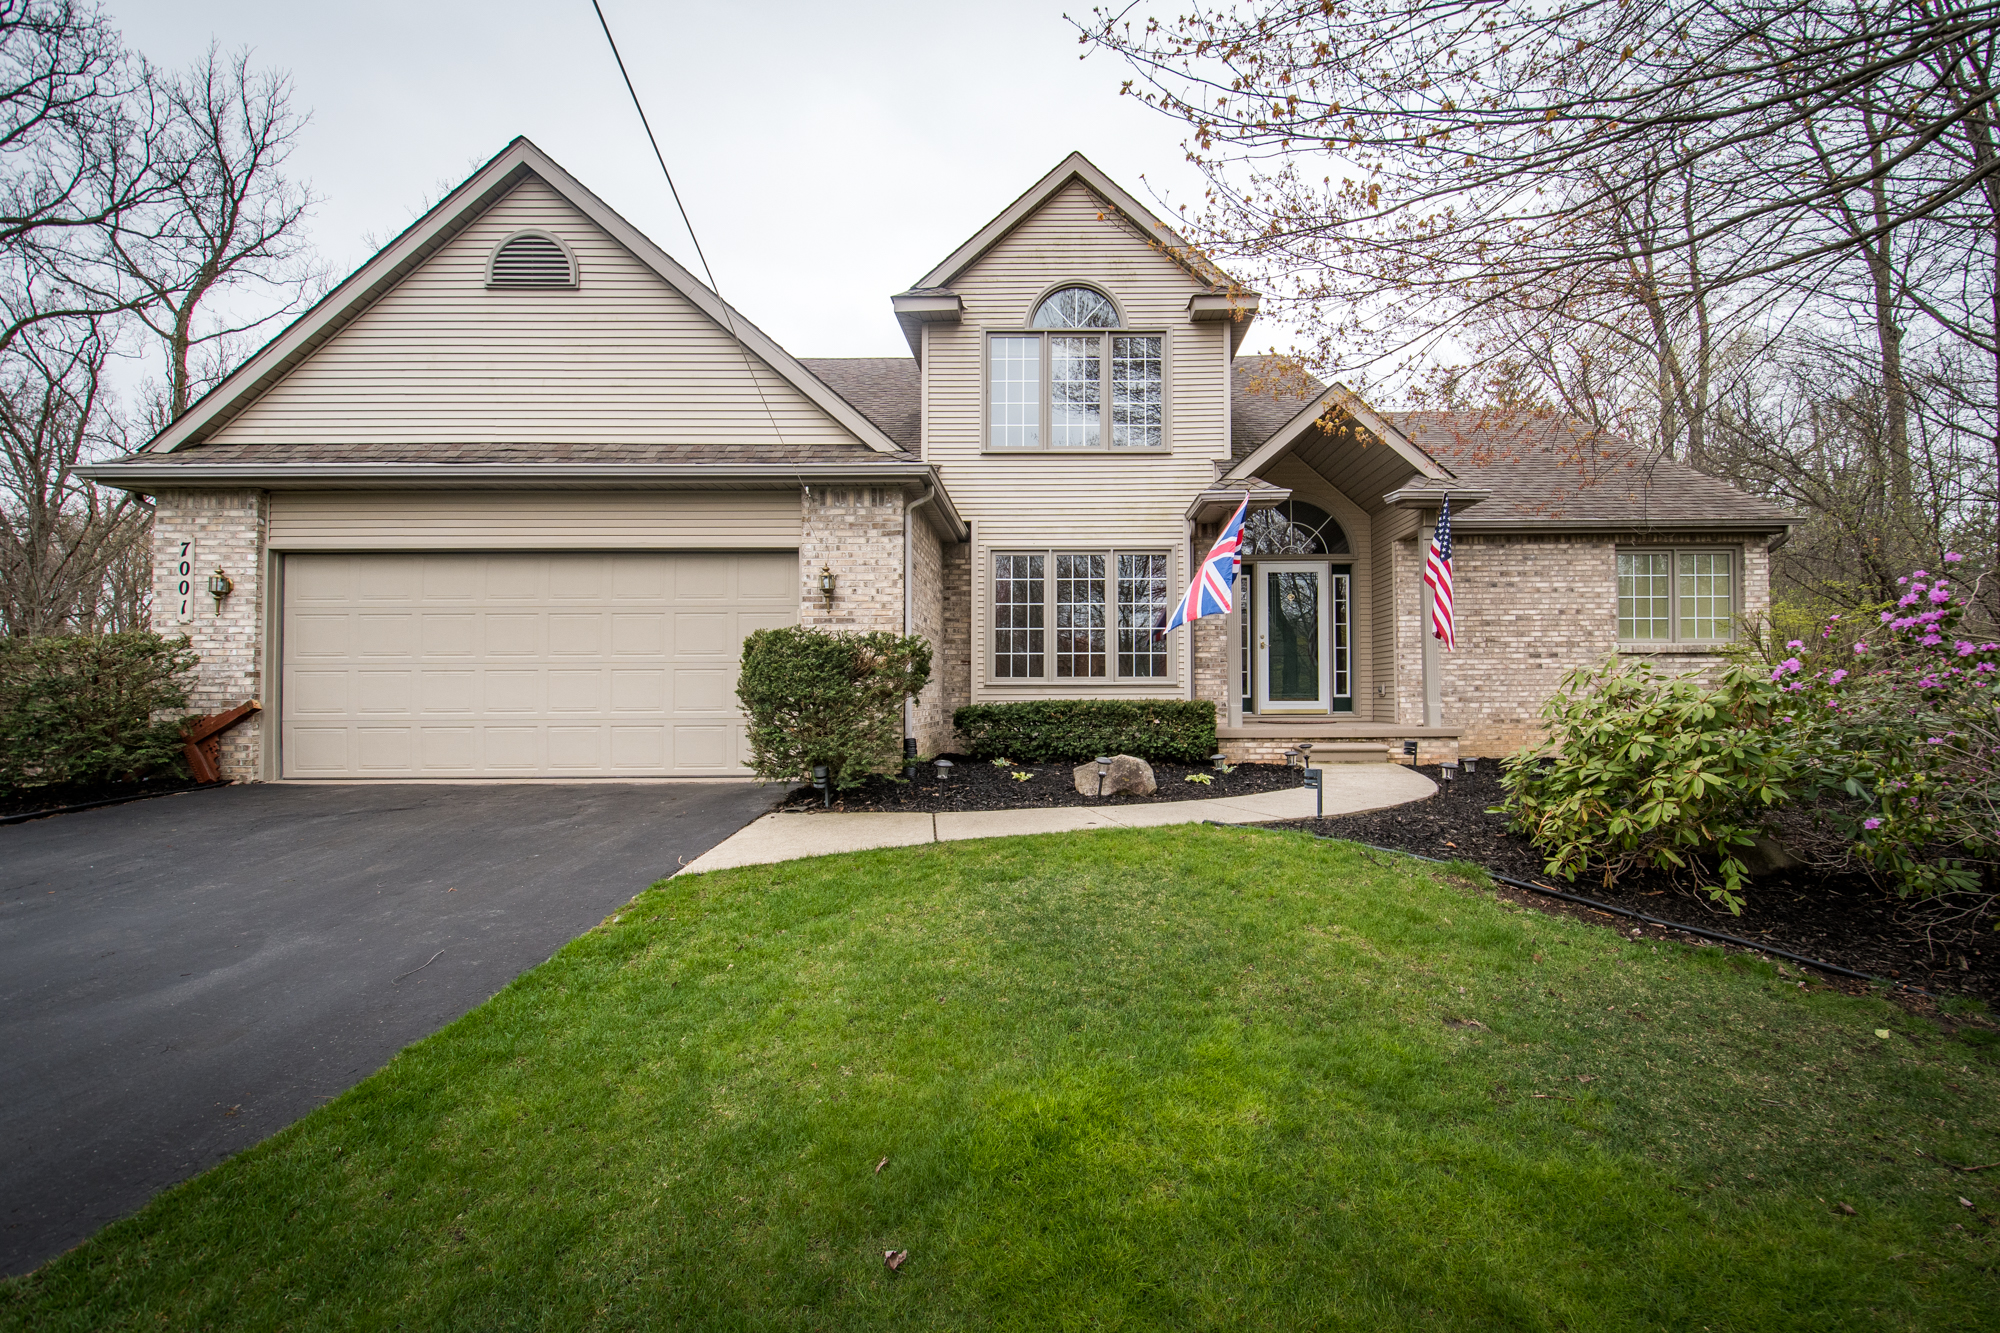 Autumn Wood, Brighton - $377,500   DOM 13 / Sold for 98% of asking price / 11 Showings